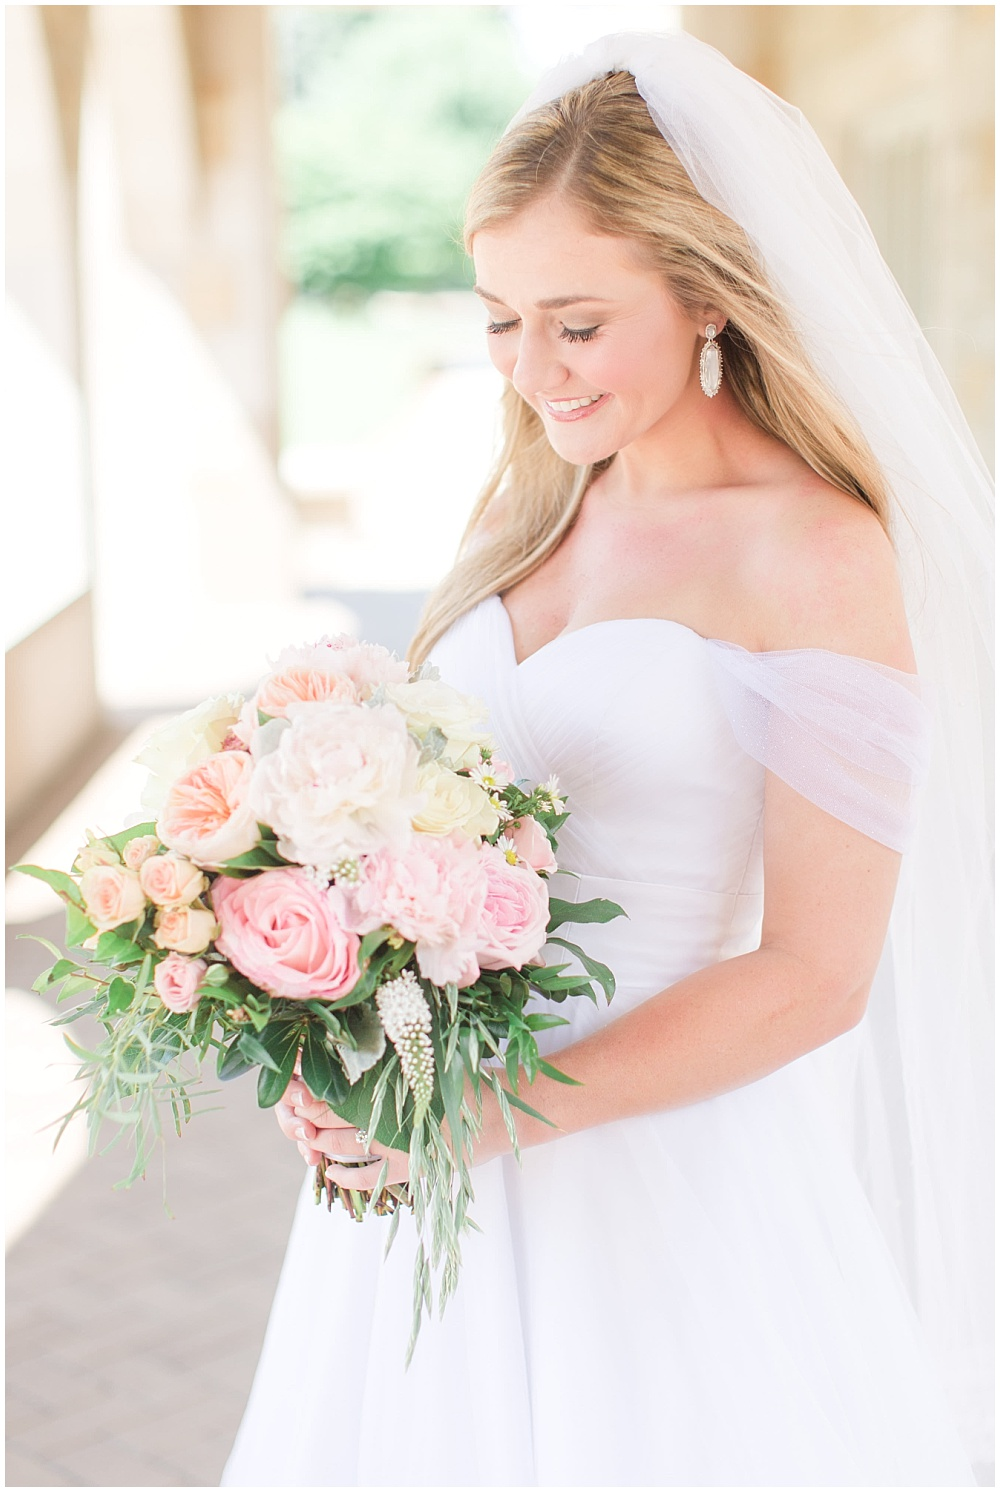 Classic white off-the-shoulder bridal gown with blush and pink bridal bouquet | Sami Renee Photography + Jessica Dum Wedding Coordination